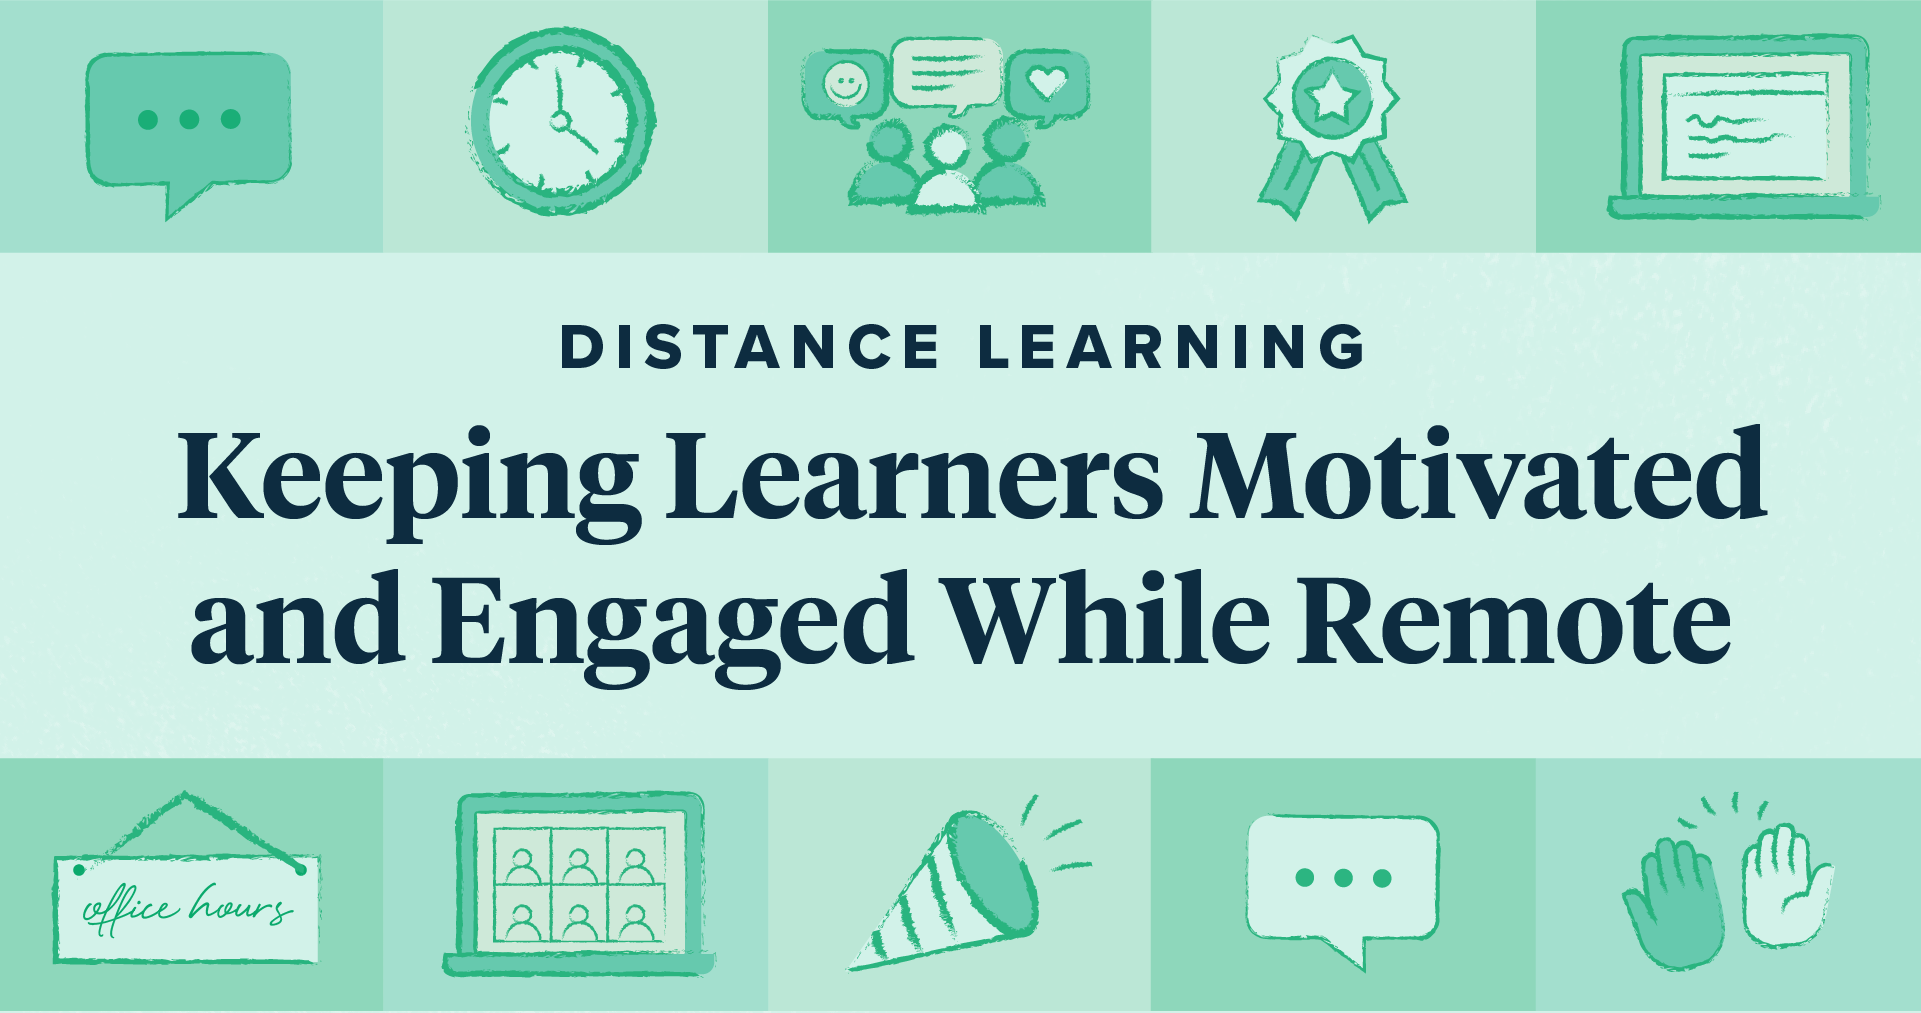 Distance Learning: Keeping Learners Engaged and Motivated While Remote